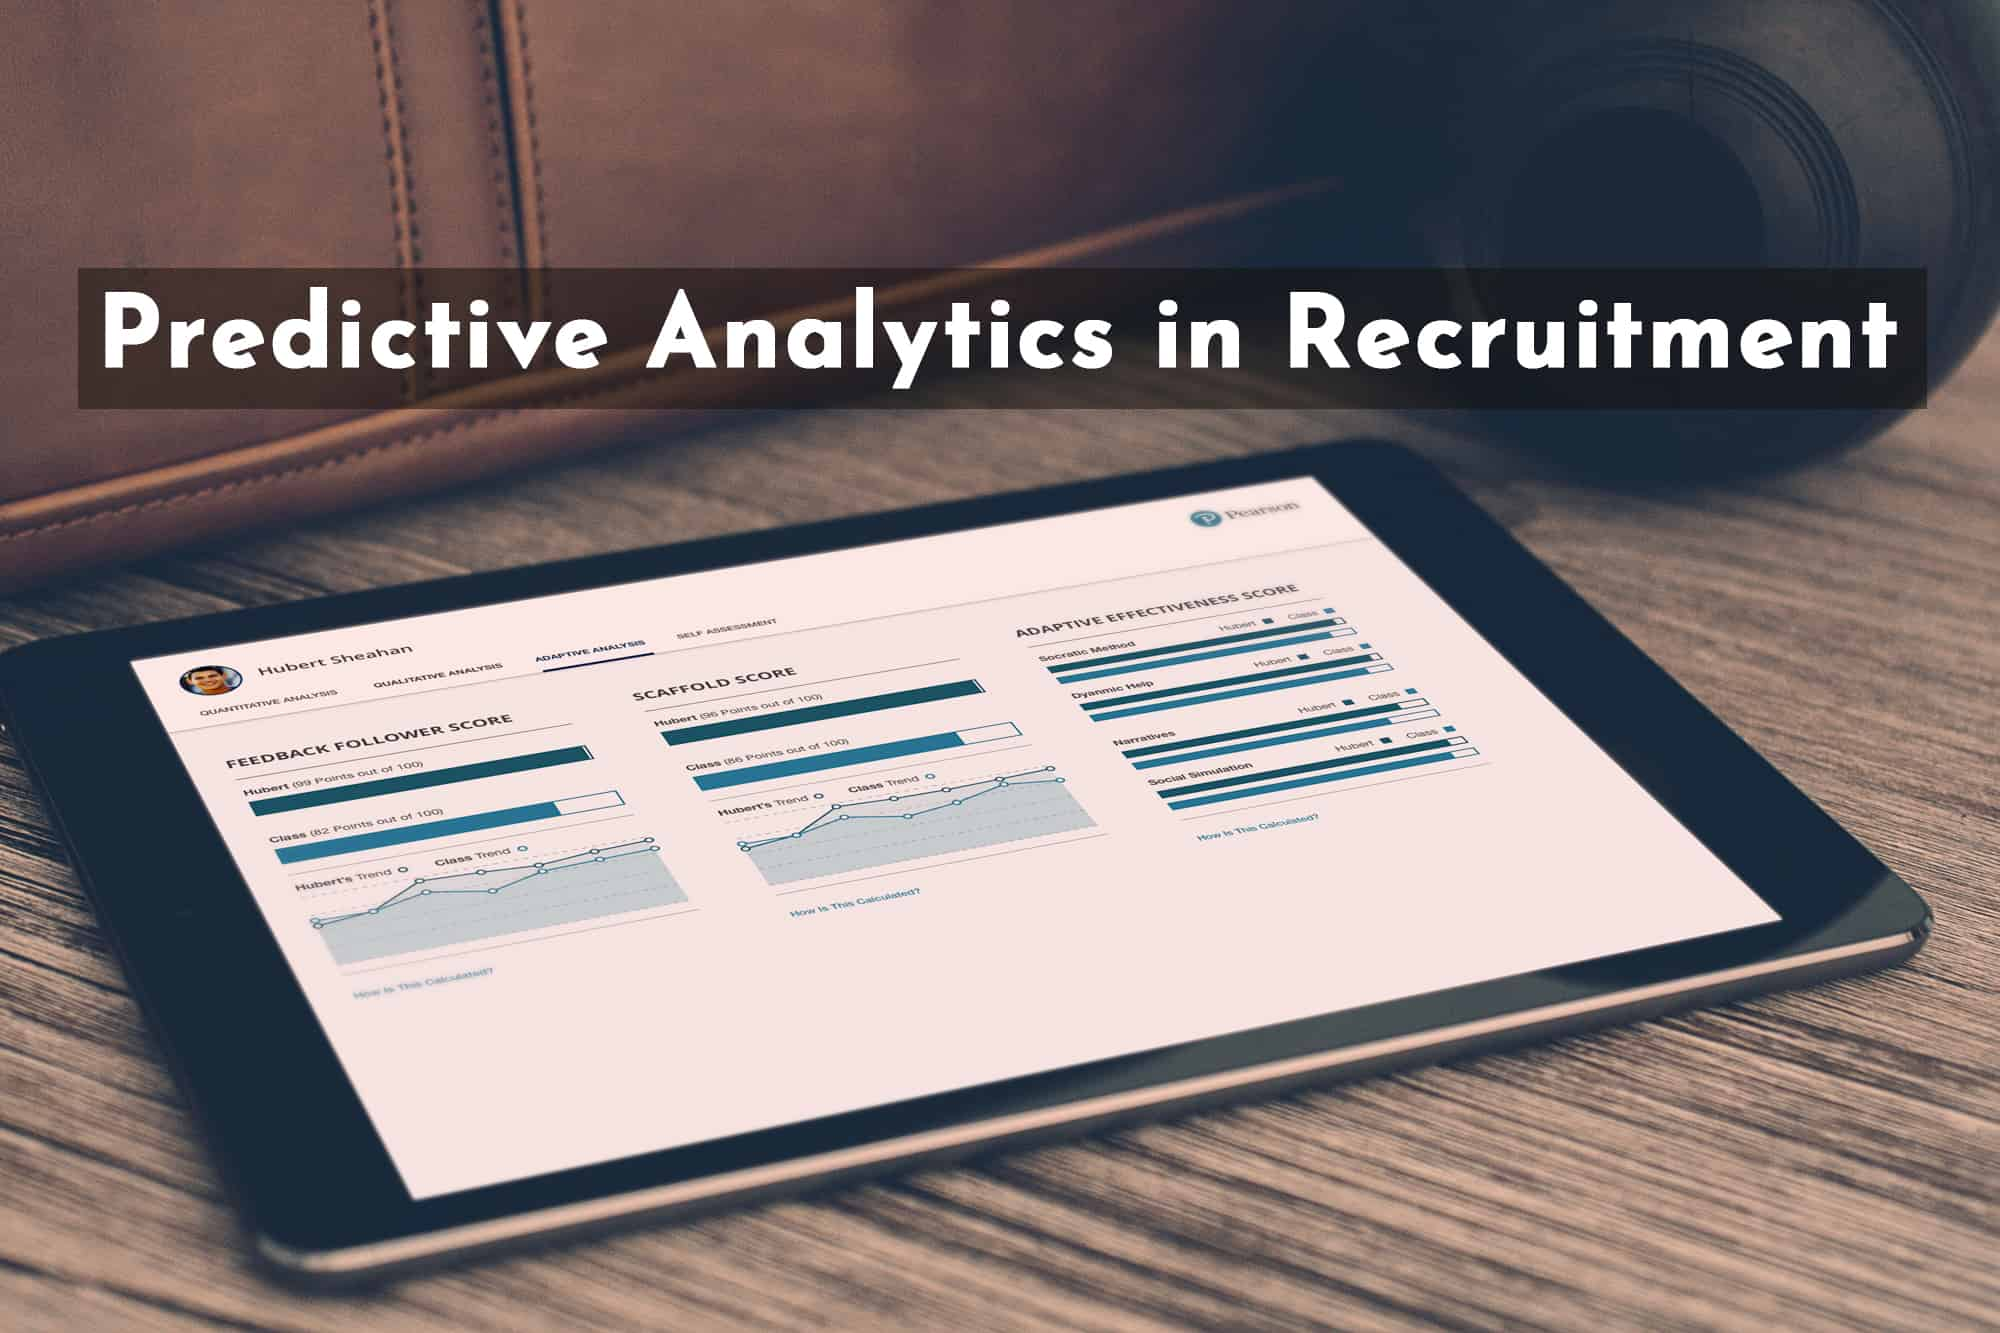 Predictive Analytics in Recruitment